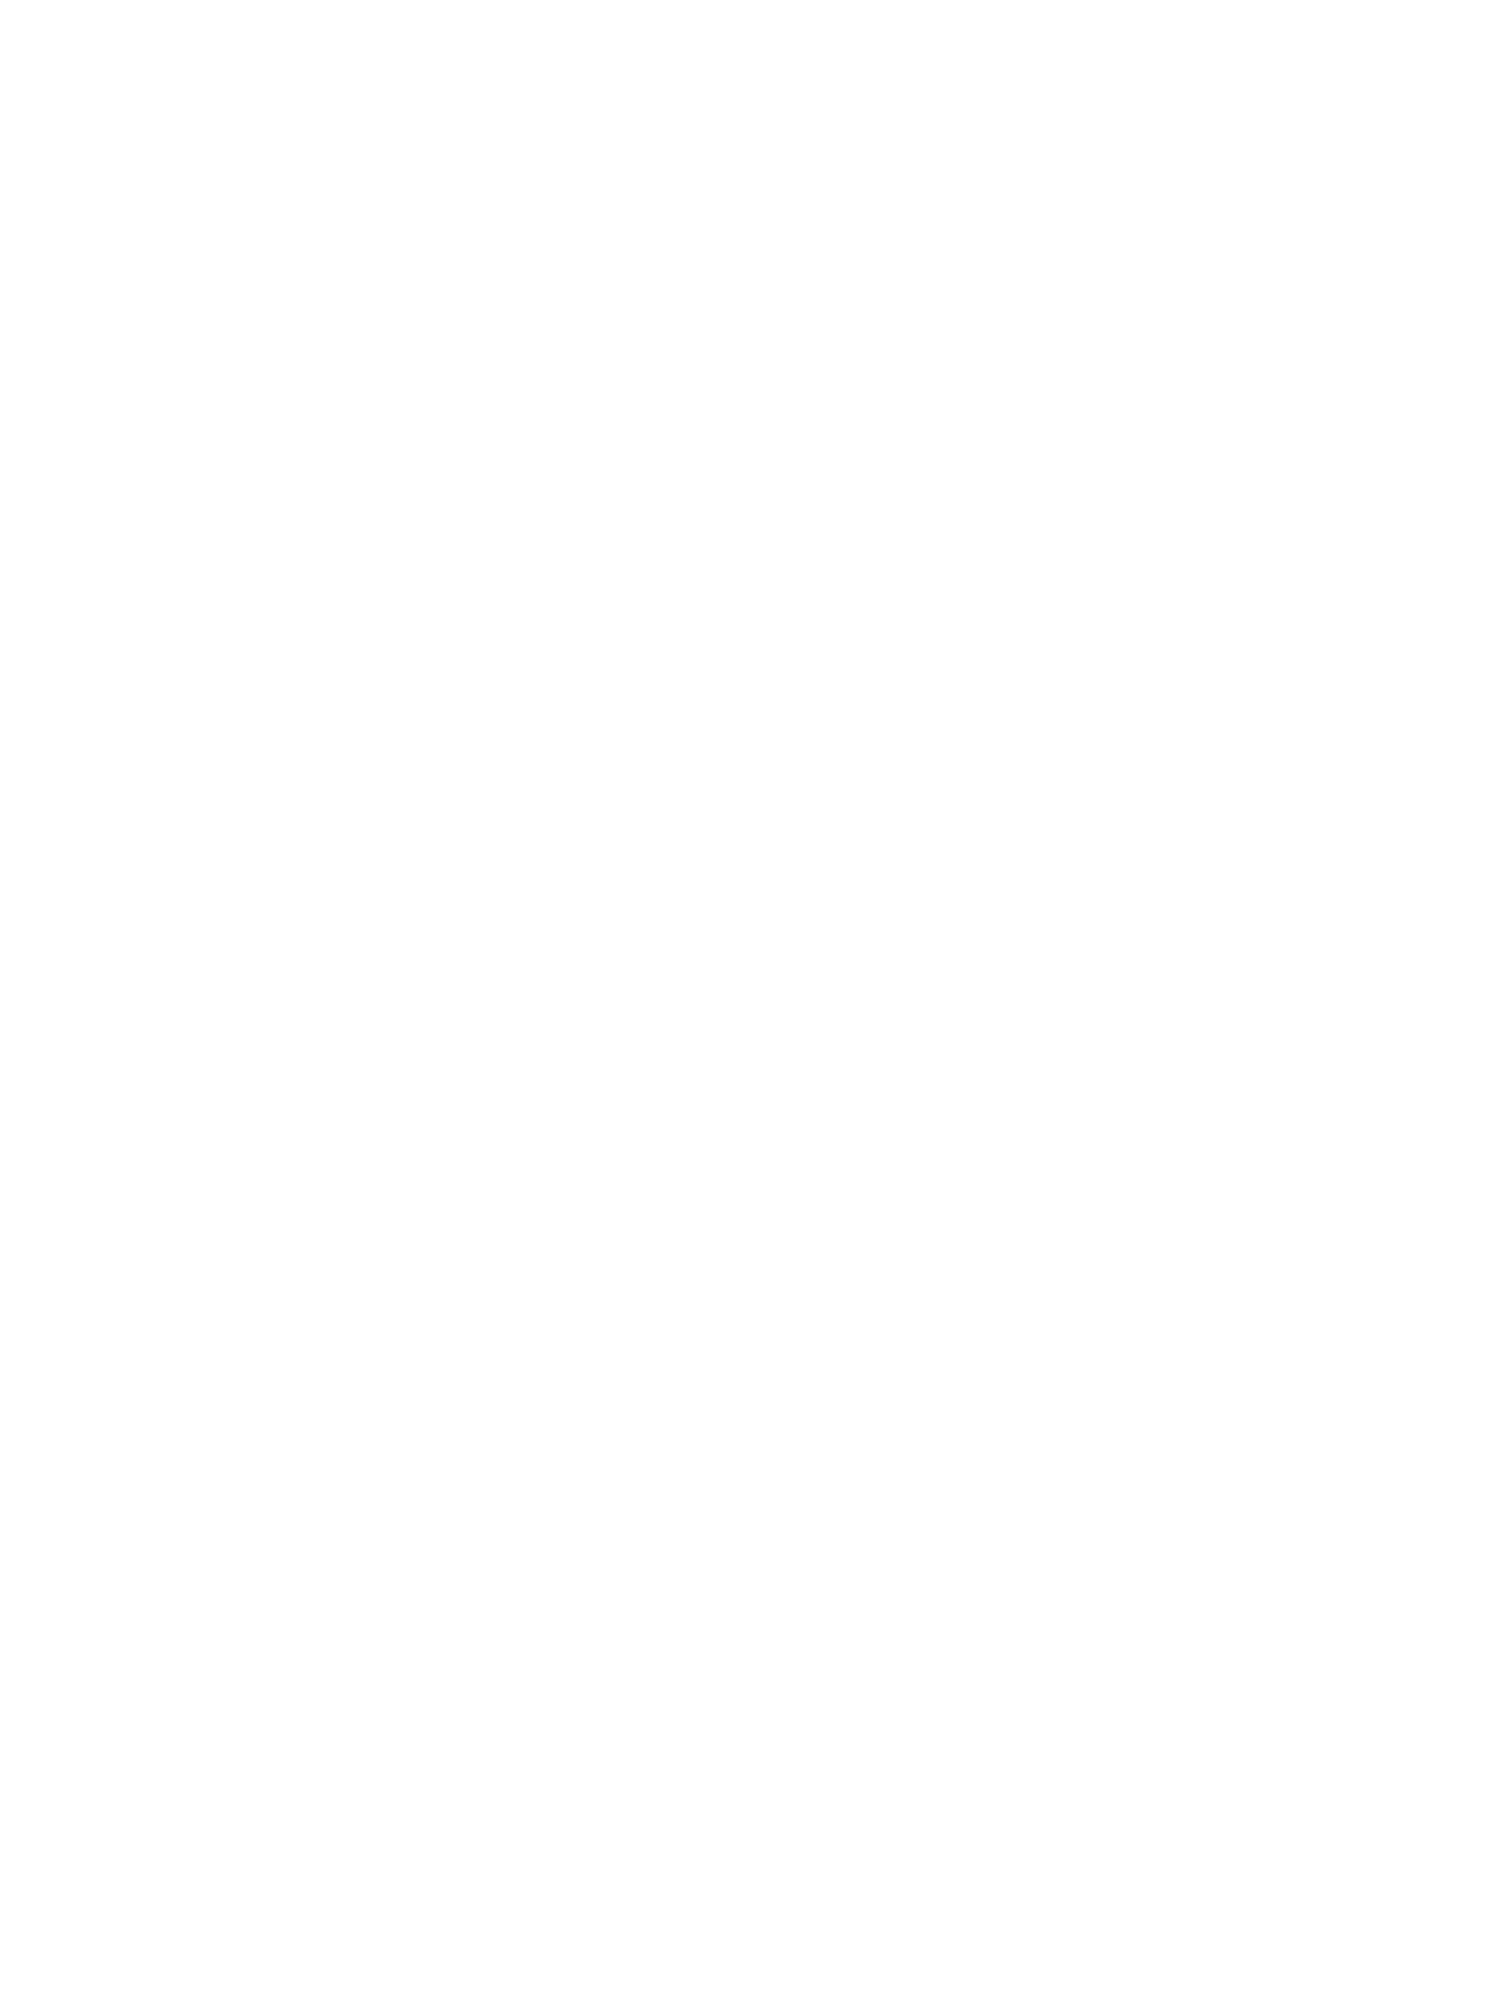 AÑEJO RESTAURANT AND TEQUILA BAR